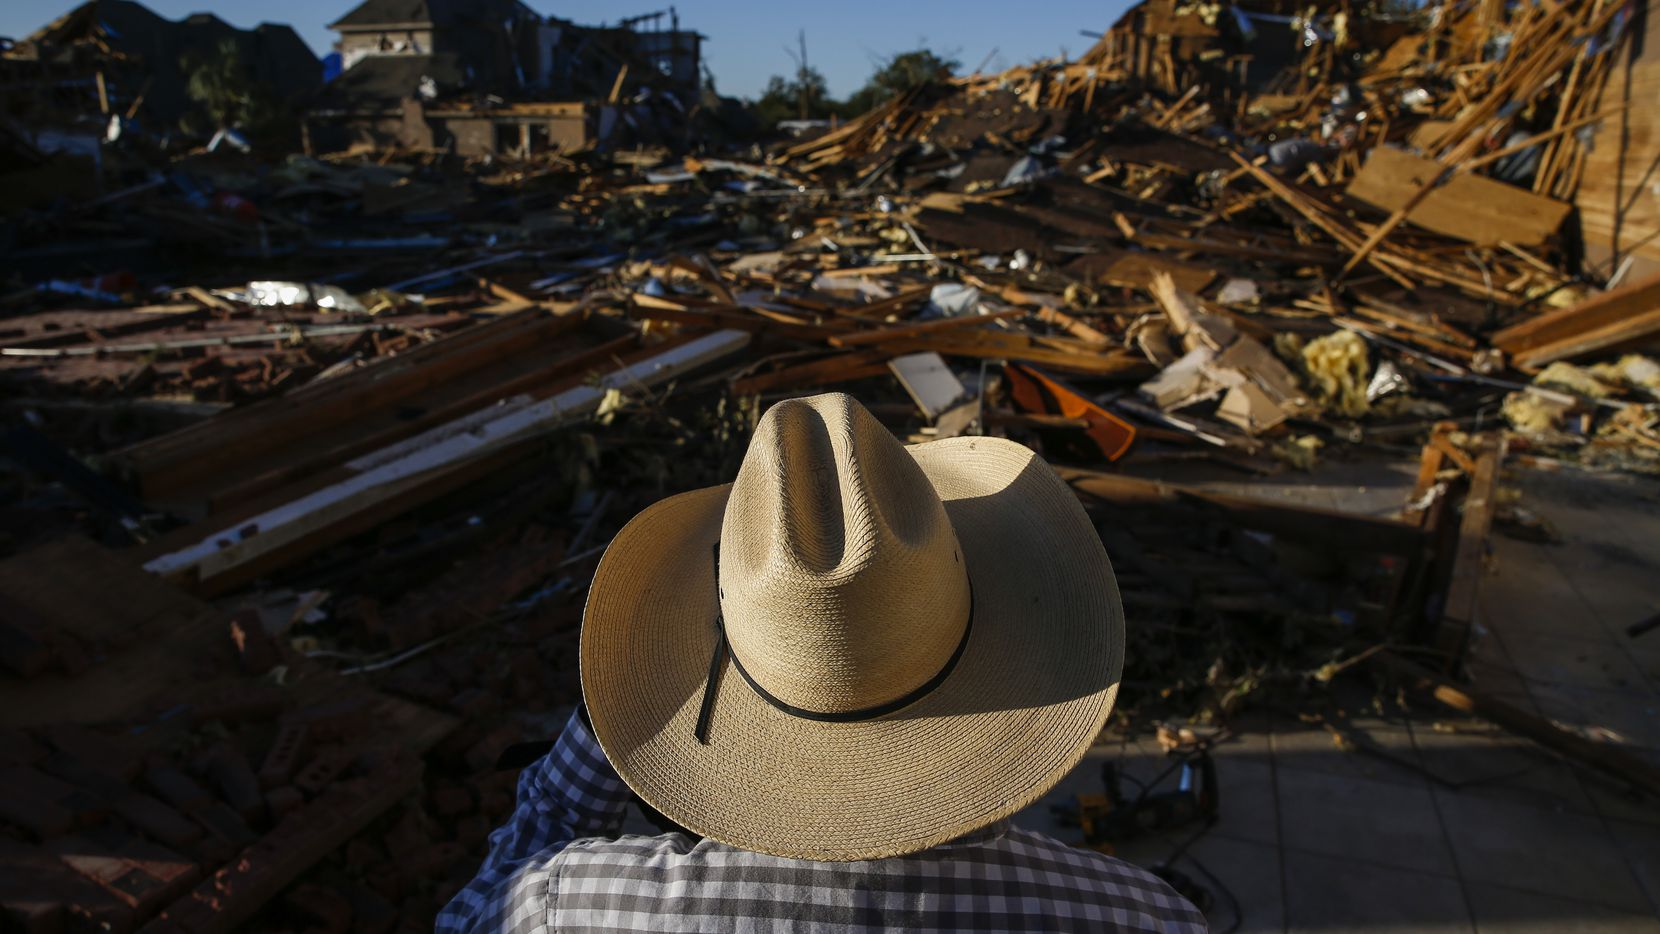 Hector Rodriguez, who has served as Deacon of Primera Iglesia Bautista Mexicana since 1987, surveys damage at the church just off of Walnut Hill Lane in Dallas, on Monday, Oct. 21, 2019 after a tornado hit the night before. (Ryan Michalesko/The Dallas Morning News)